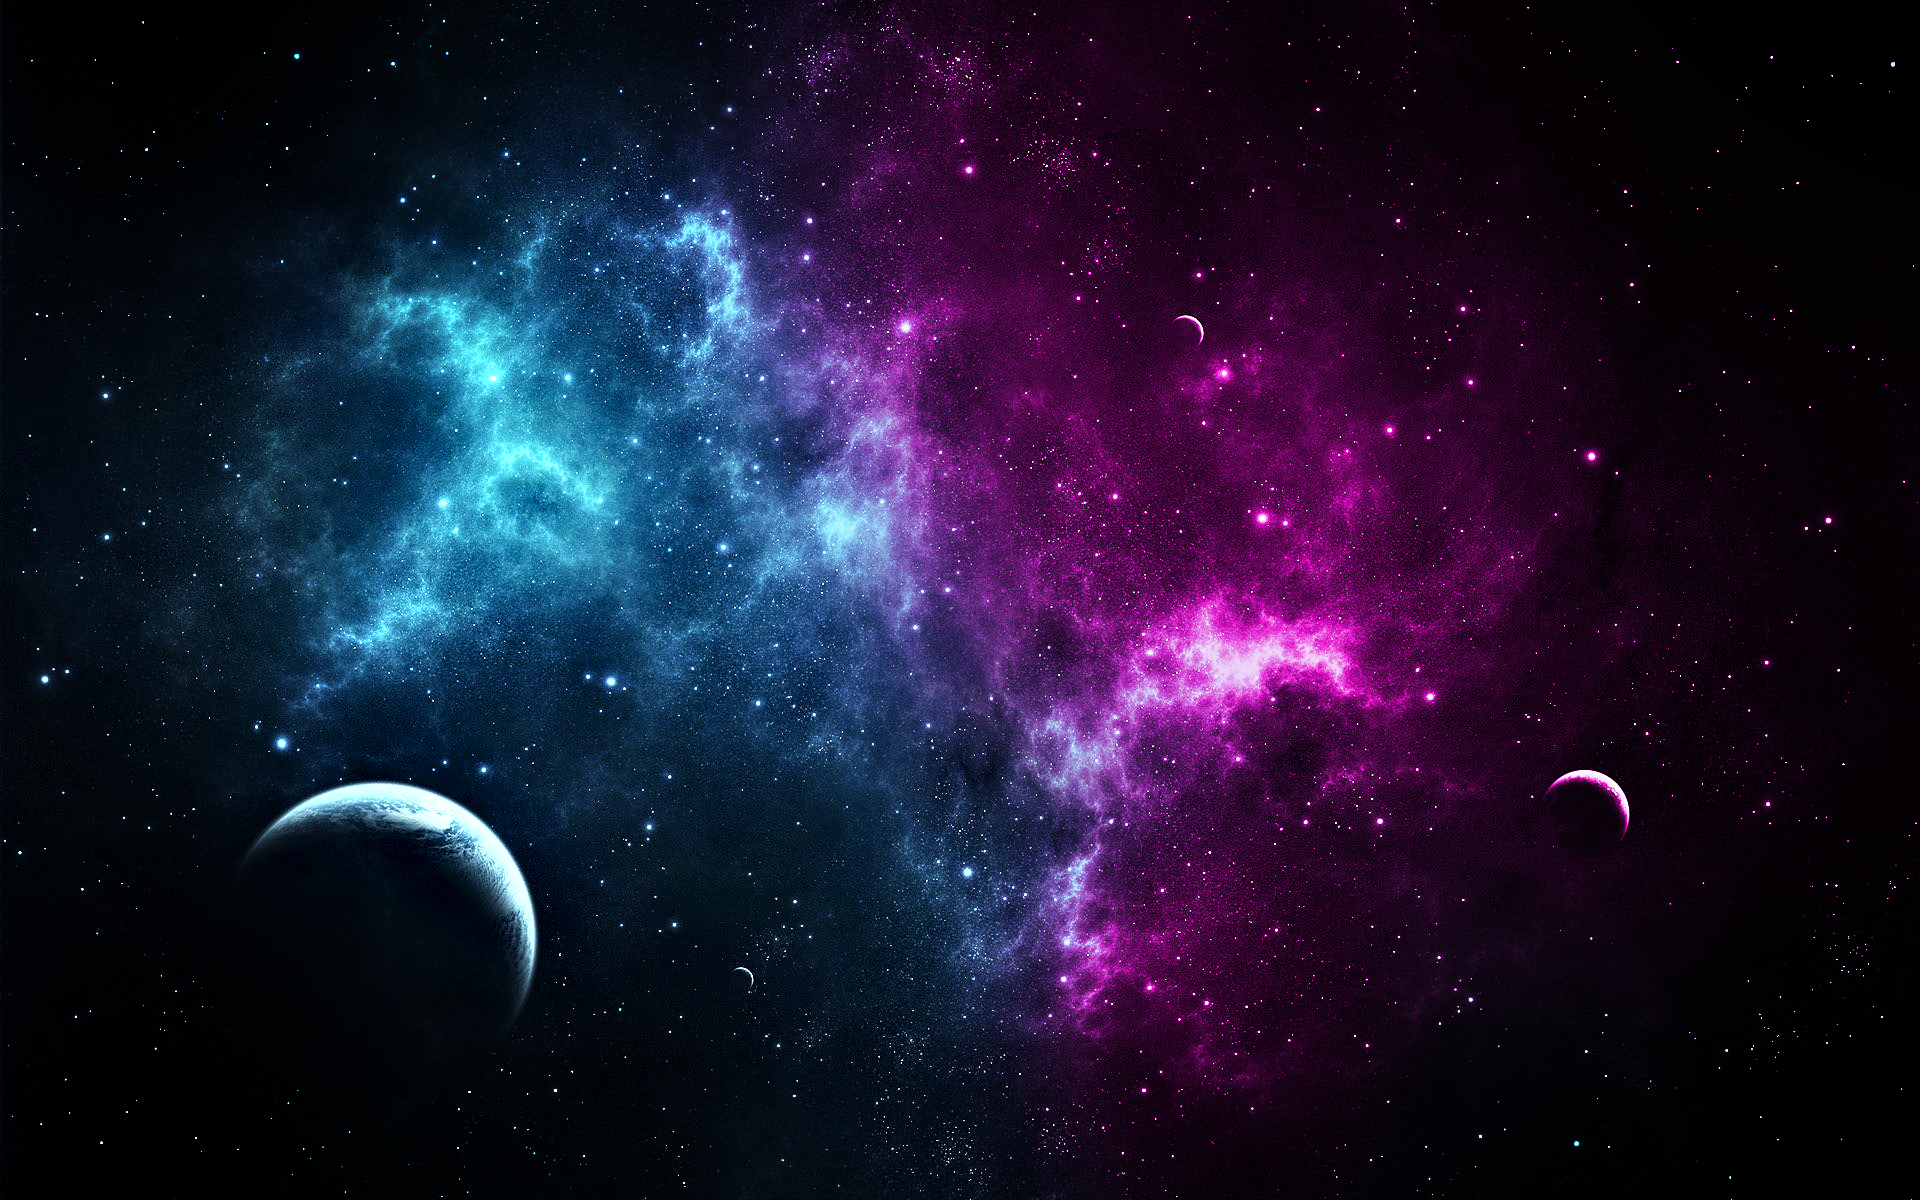 Shop Most Popular Usa Space Telescopes Eligible For Global Shipping On Amazon Com Just Click Image Purple Galaxy Wallpaper Galaxy Wallpaper Planets Wallpaper